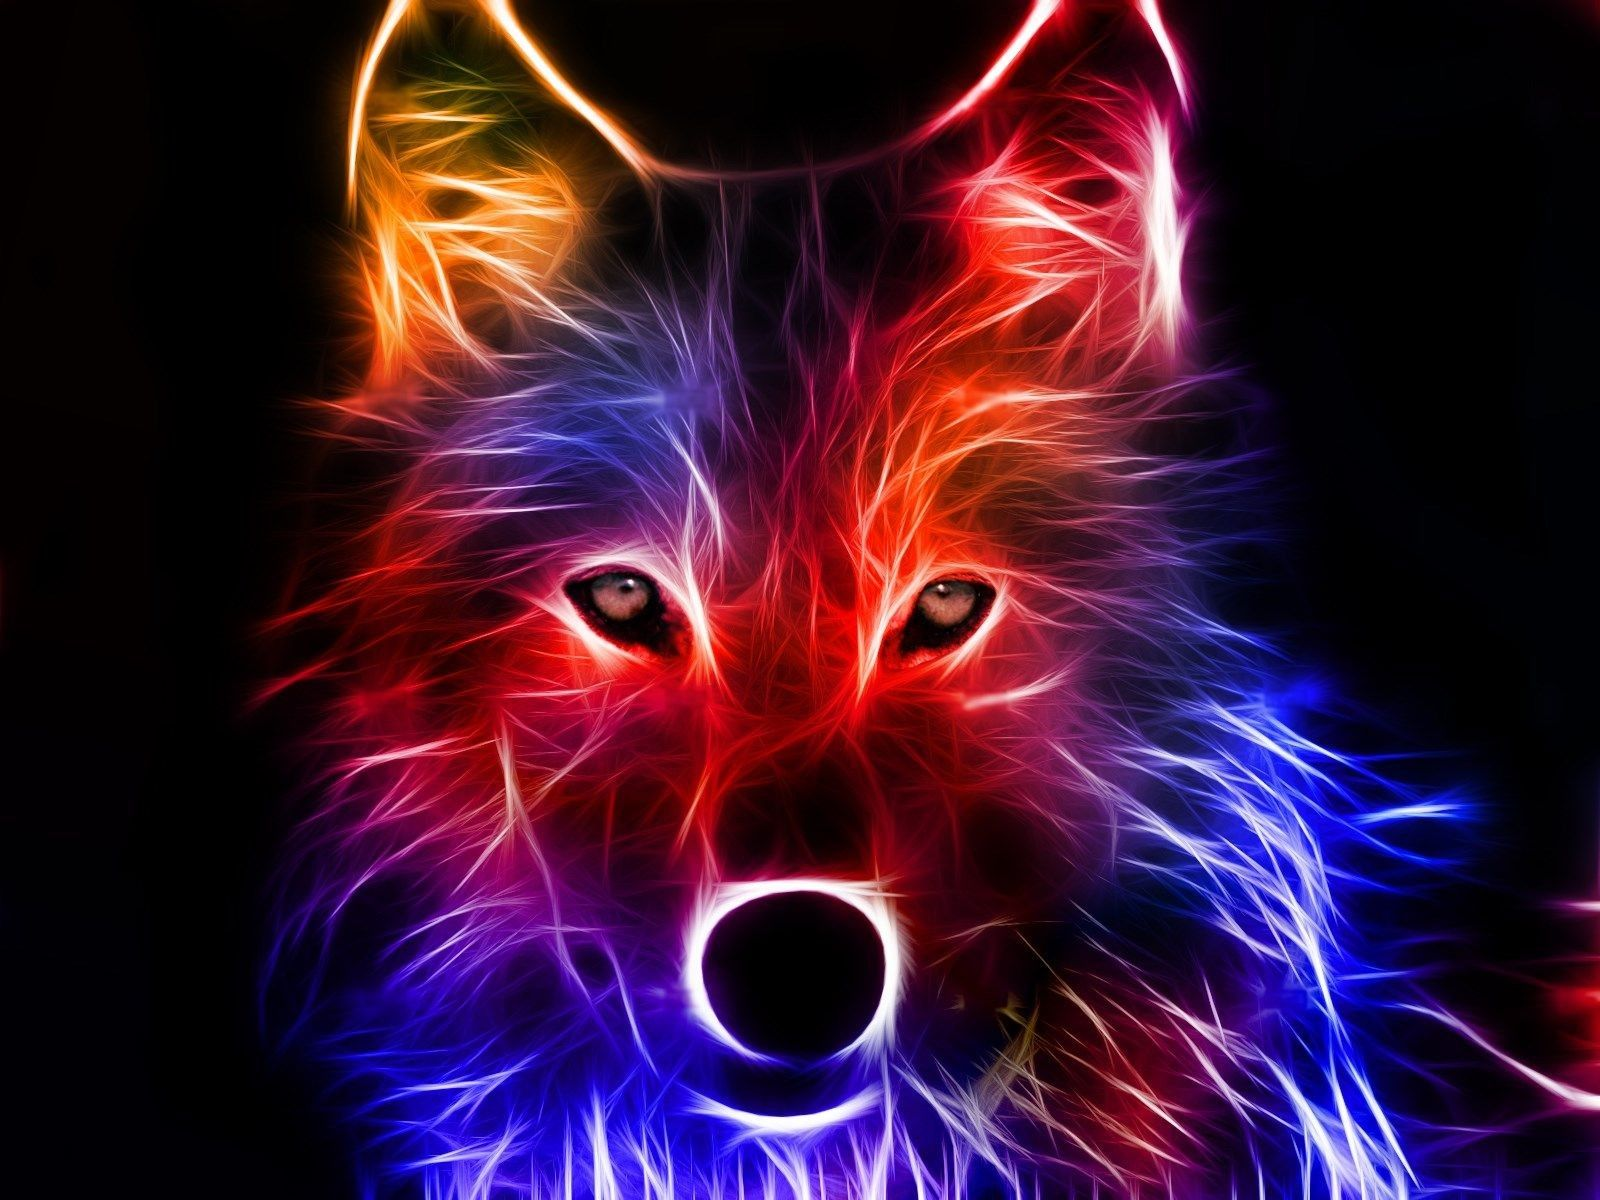 1600x1200 Wallpaper for android Neon Best Of Desktop Wallpaper for Wolf ...